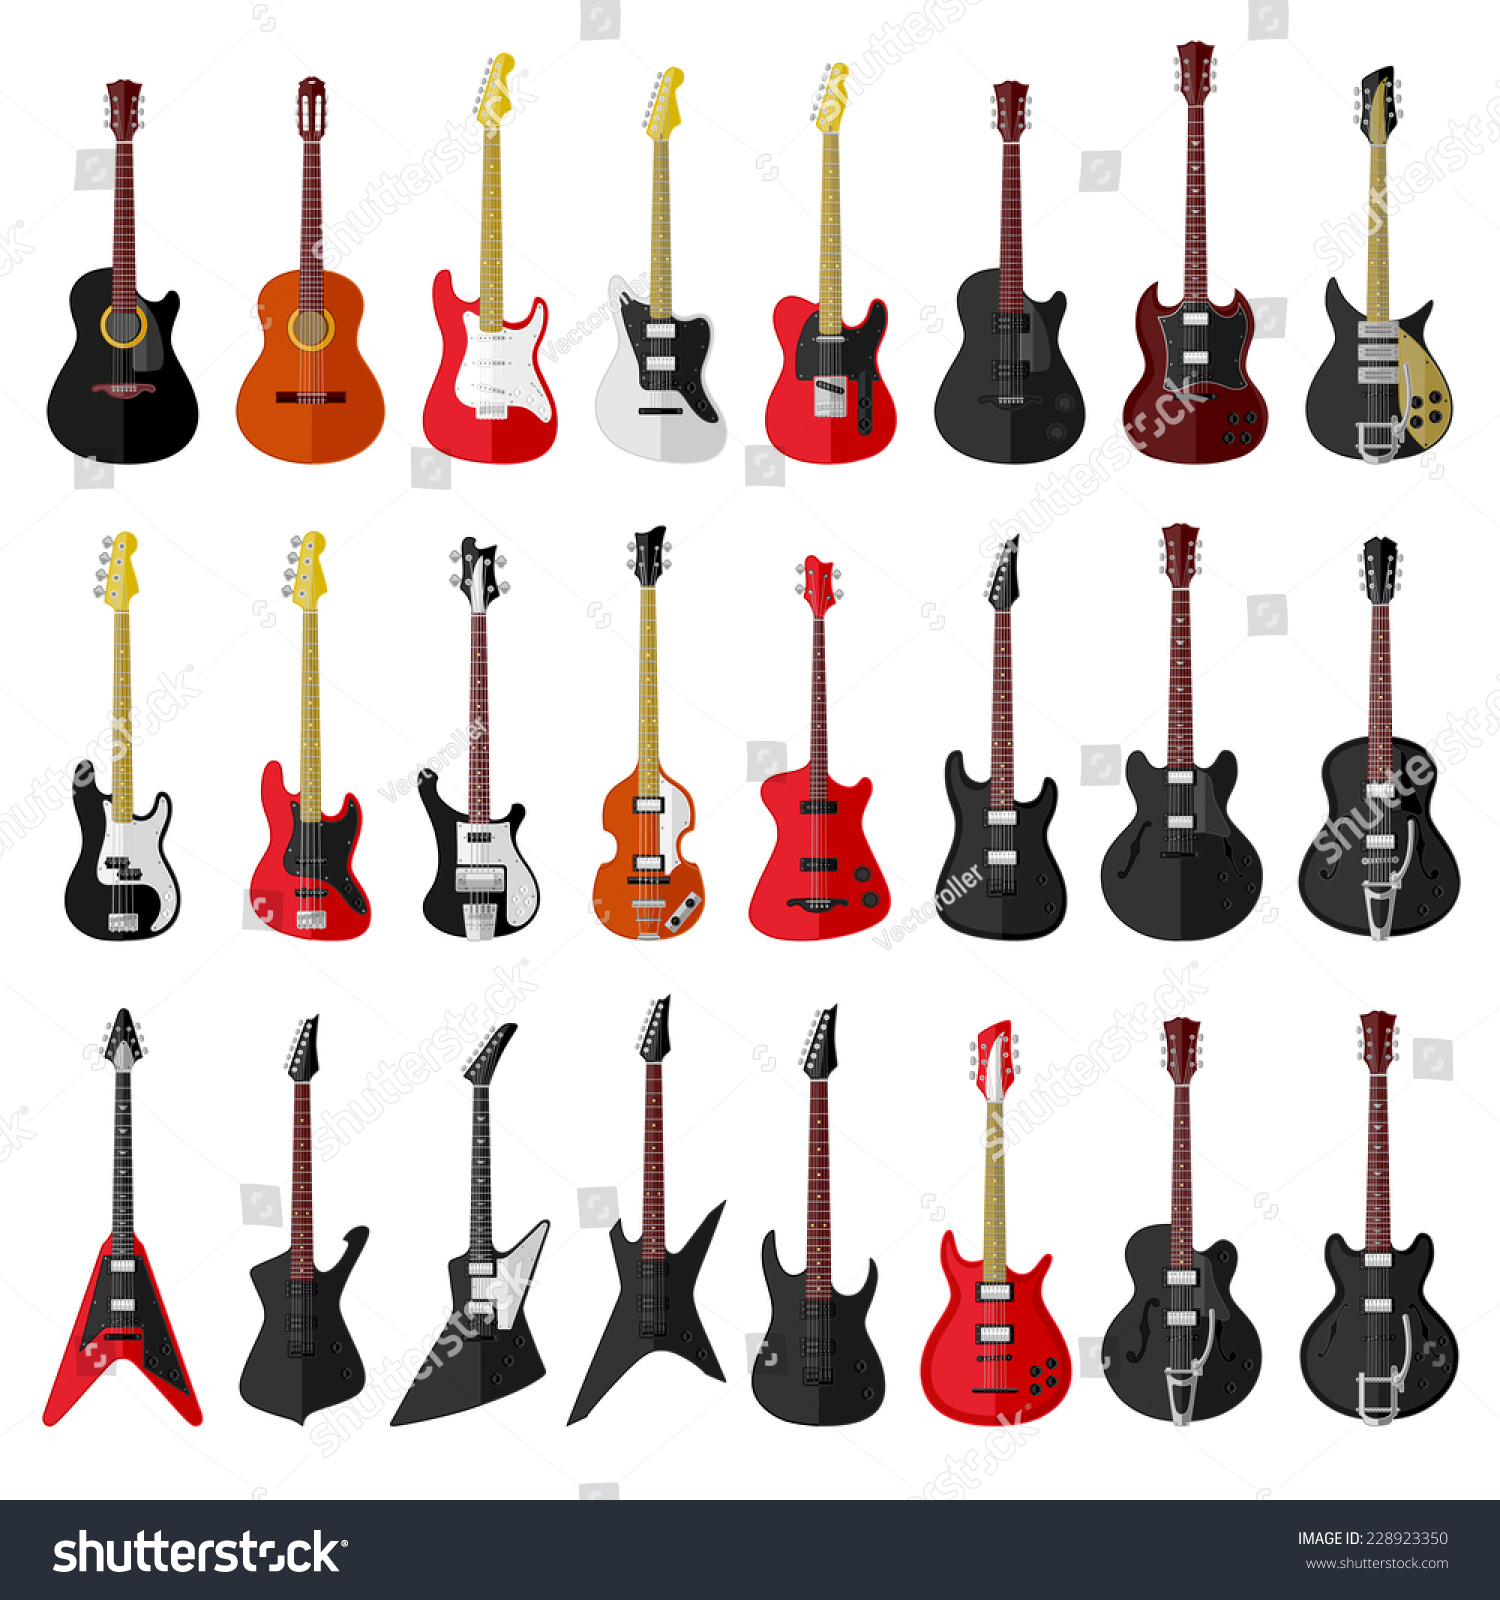 Set Isolated Vintage Guitars Flat Design Stock Vector